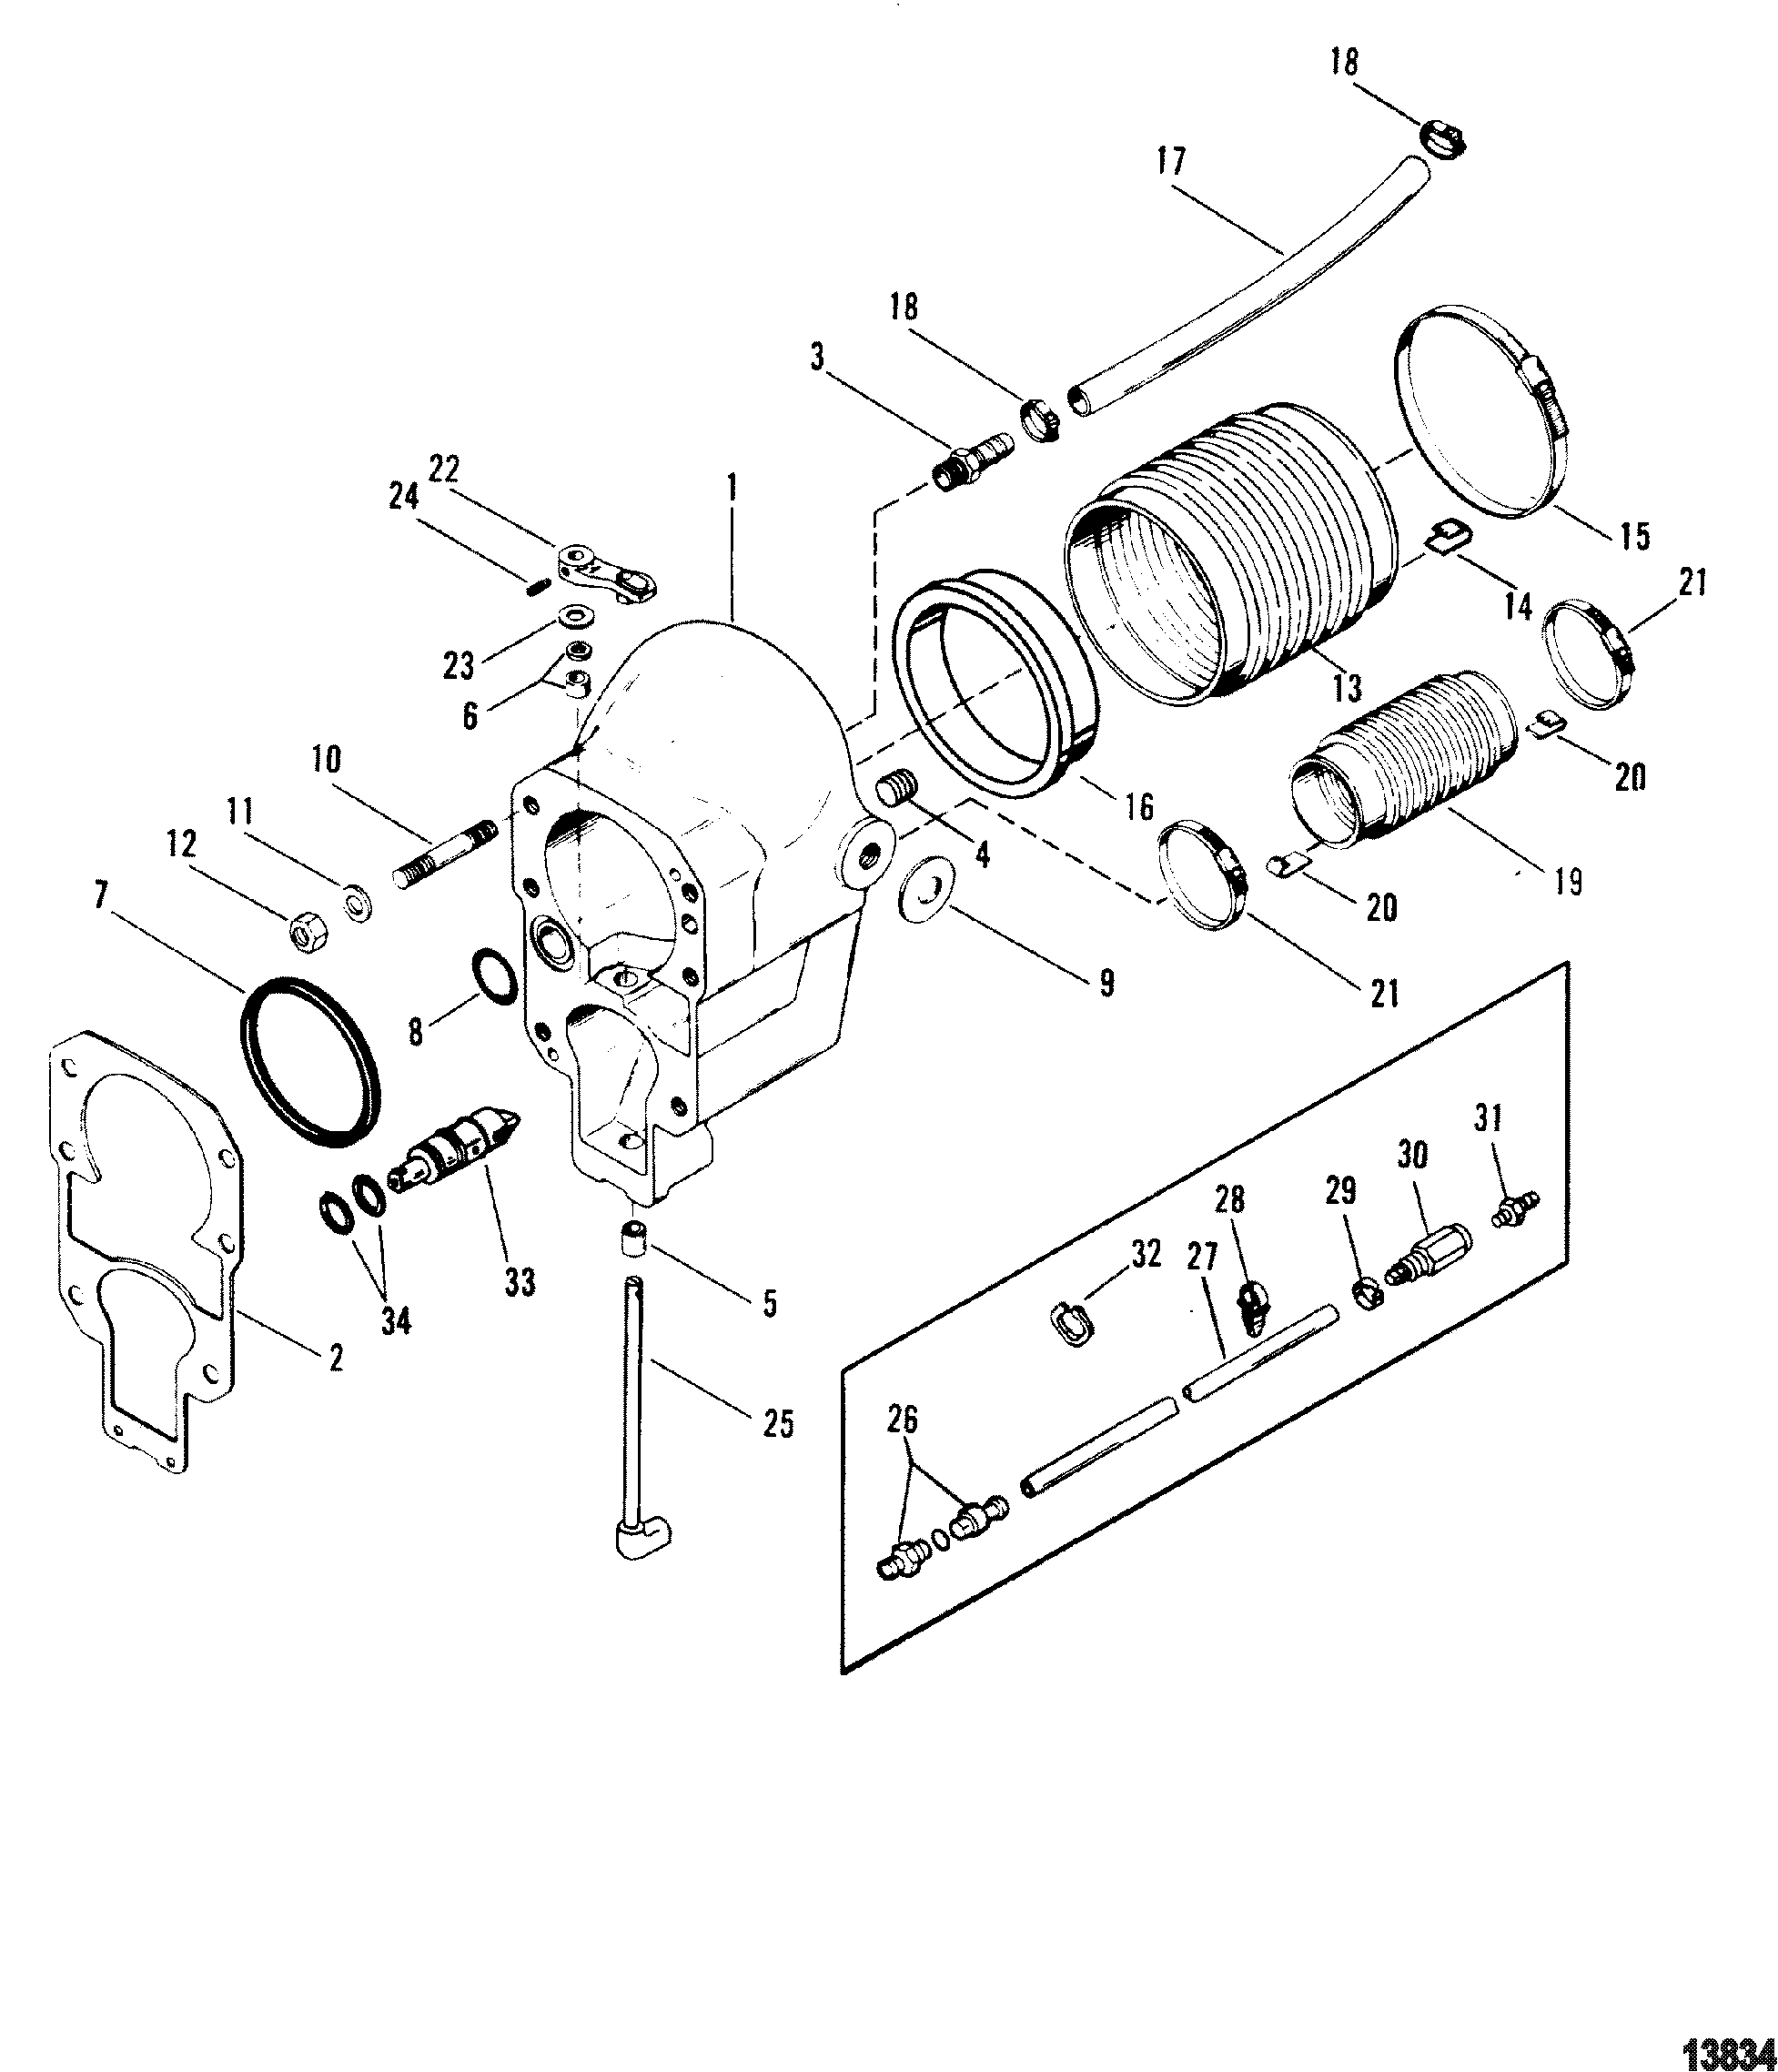 Show product also Cummins Isx Fuel System Diagram LGlDWgxAvf6oLChFB 7C1ostY 7CGwo 7C1 XvkTRQKv9Fmug together with 8lthk Causing Pressure Build Heat Exchanger likewise 593741 Help With A Water Pump 1981 Mercruiser 165hp Inline 6 Alpha 1 Gen 1 furthermore 350 Chevy Cooling System Diagram. on mercruiser freshwater cooling system